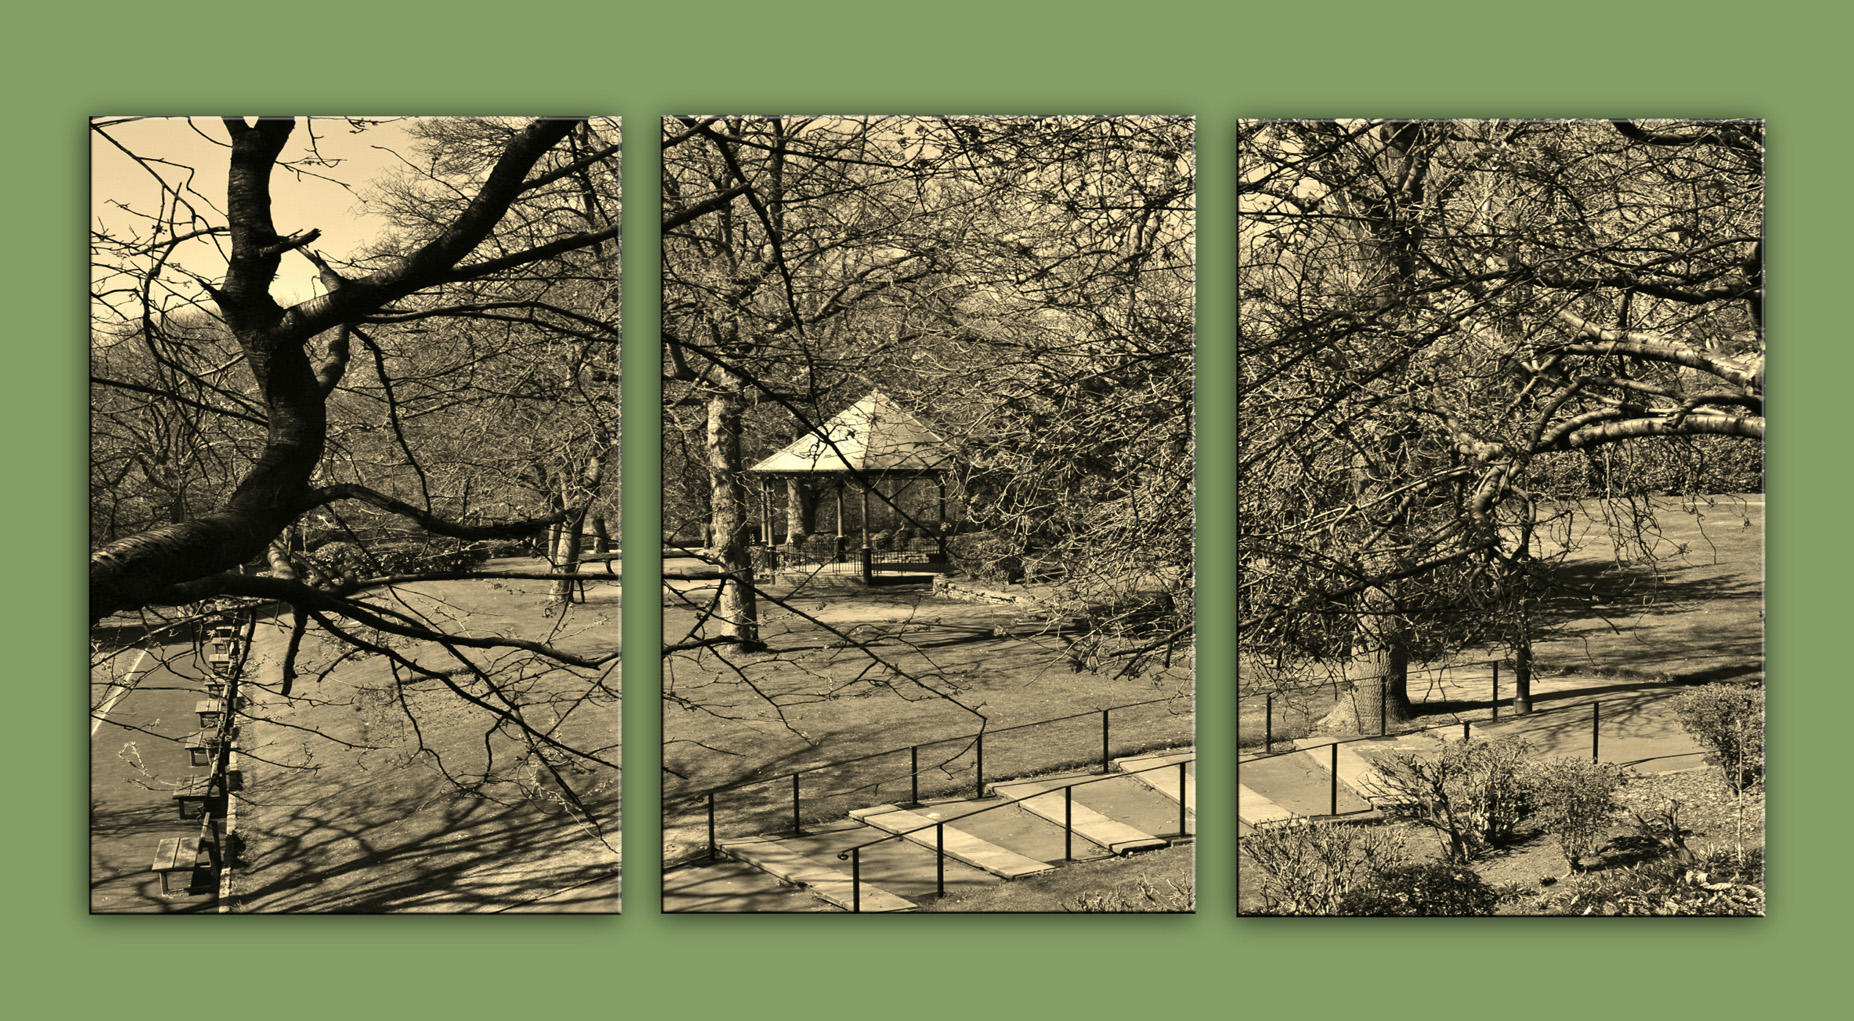 Bandstand in Jubilee Park in sepia